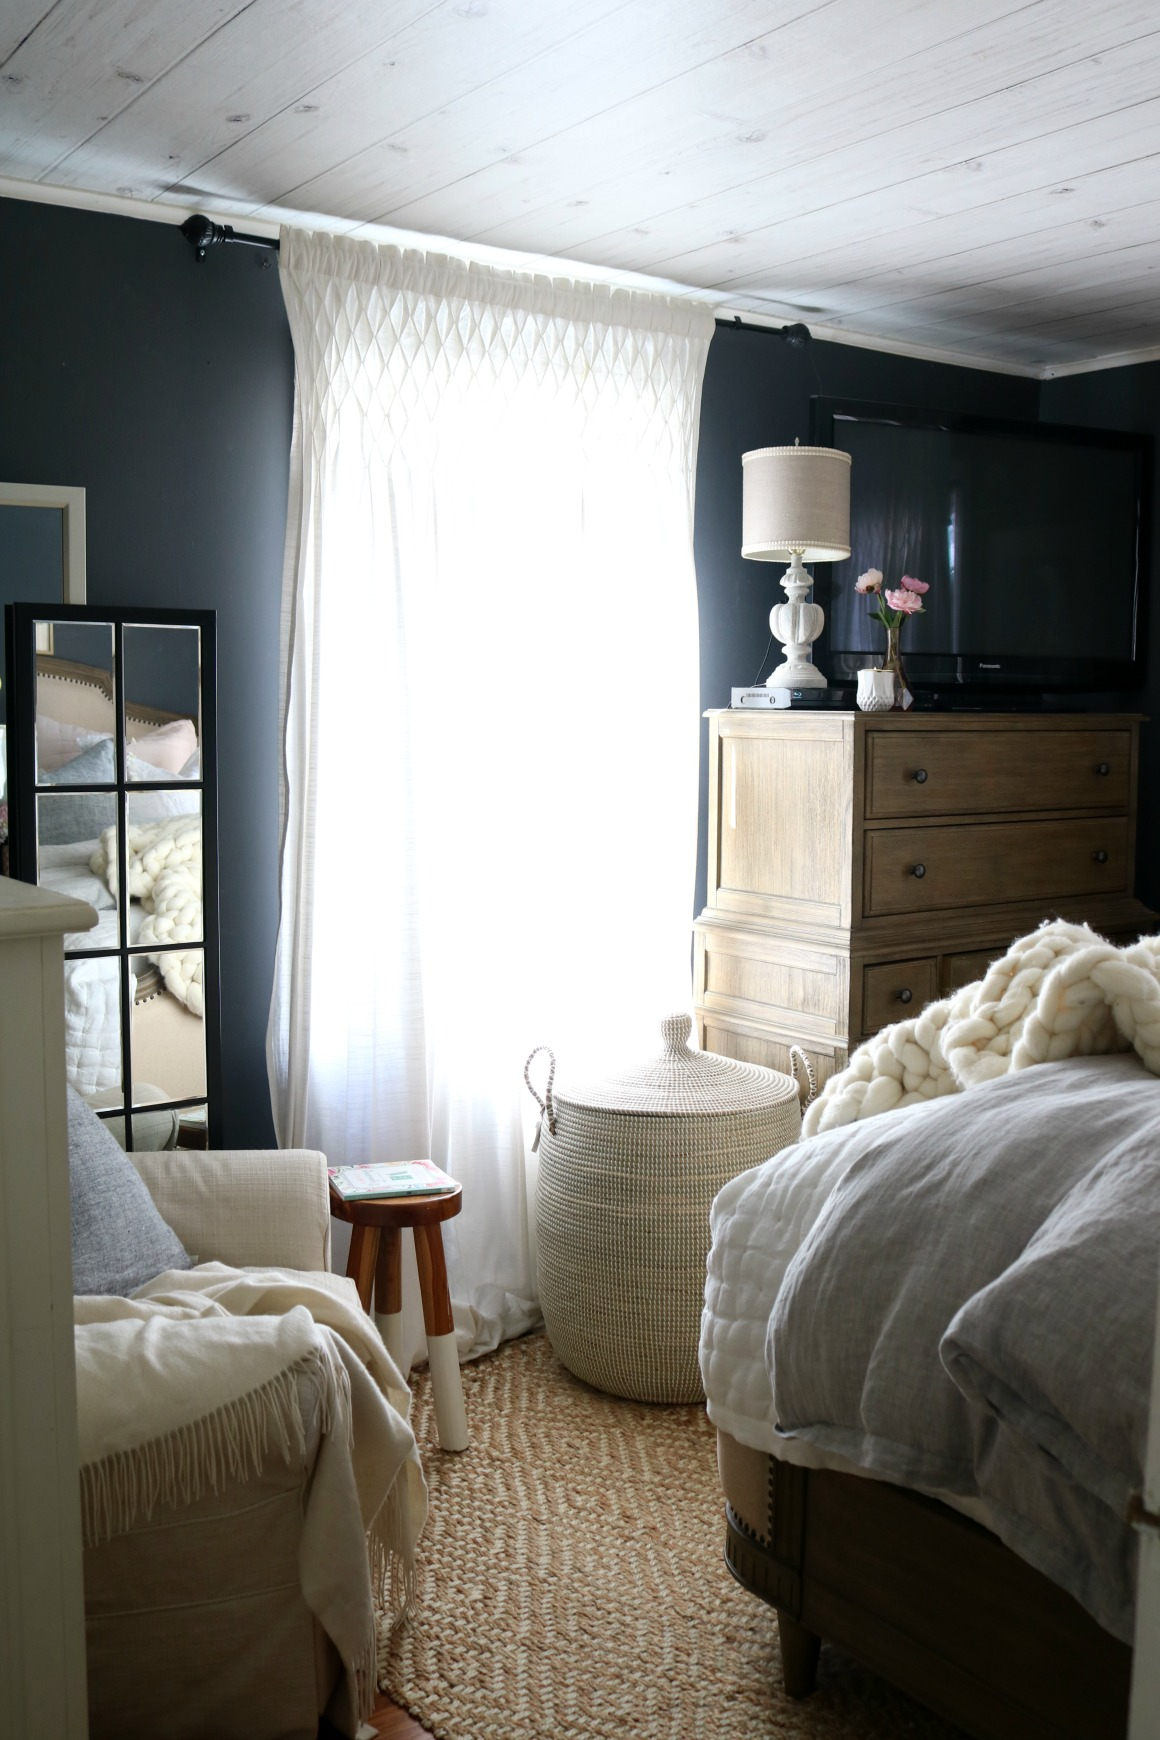 Master Bedroom Bedding- How to Make your Bedding Fluffy!